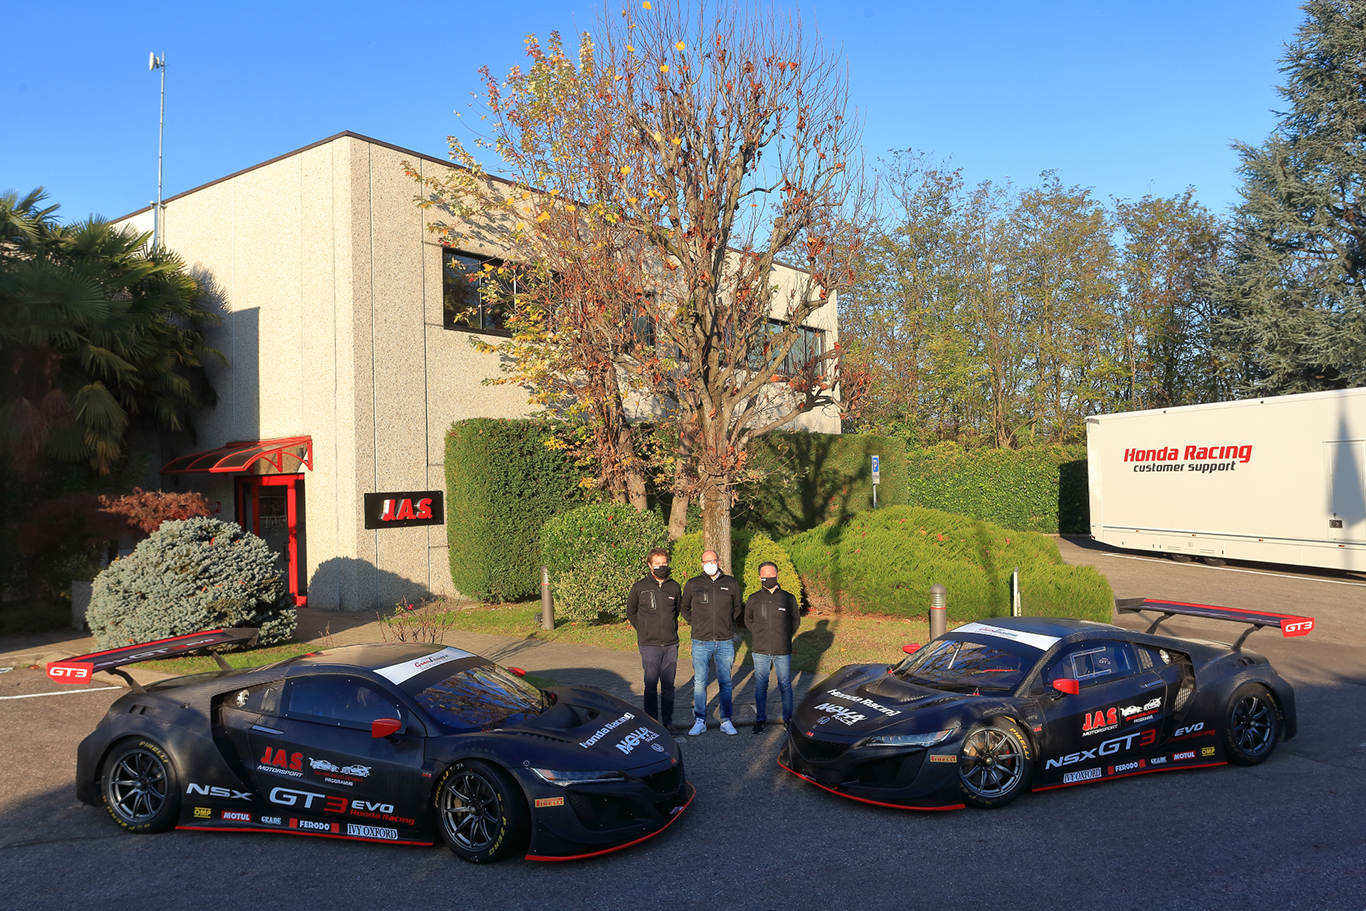 Nova Race expands Italian GT program to include two Honda NSX GT3s in 2021